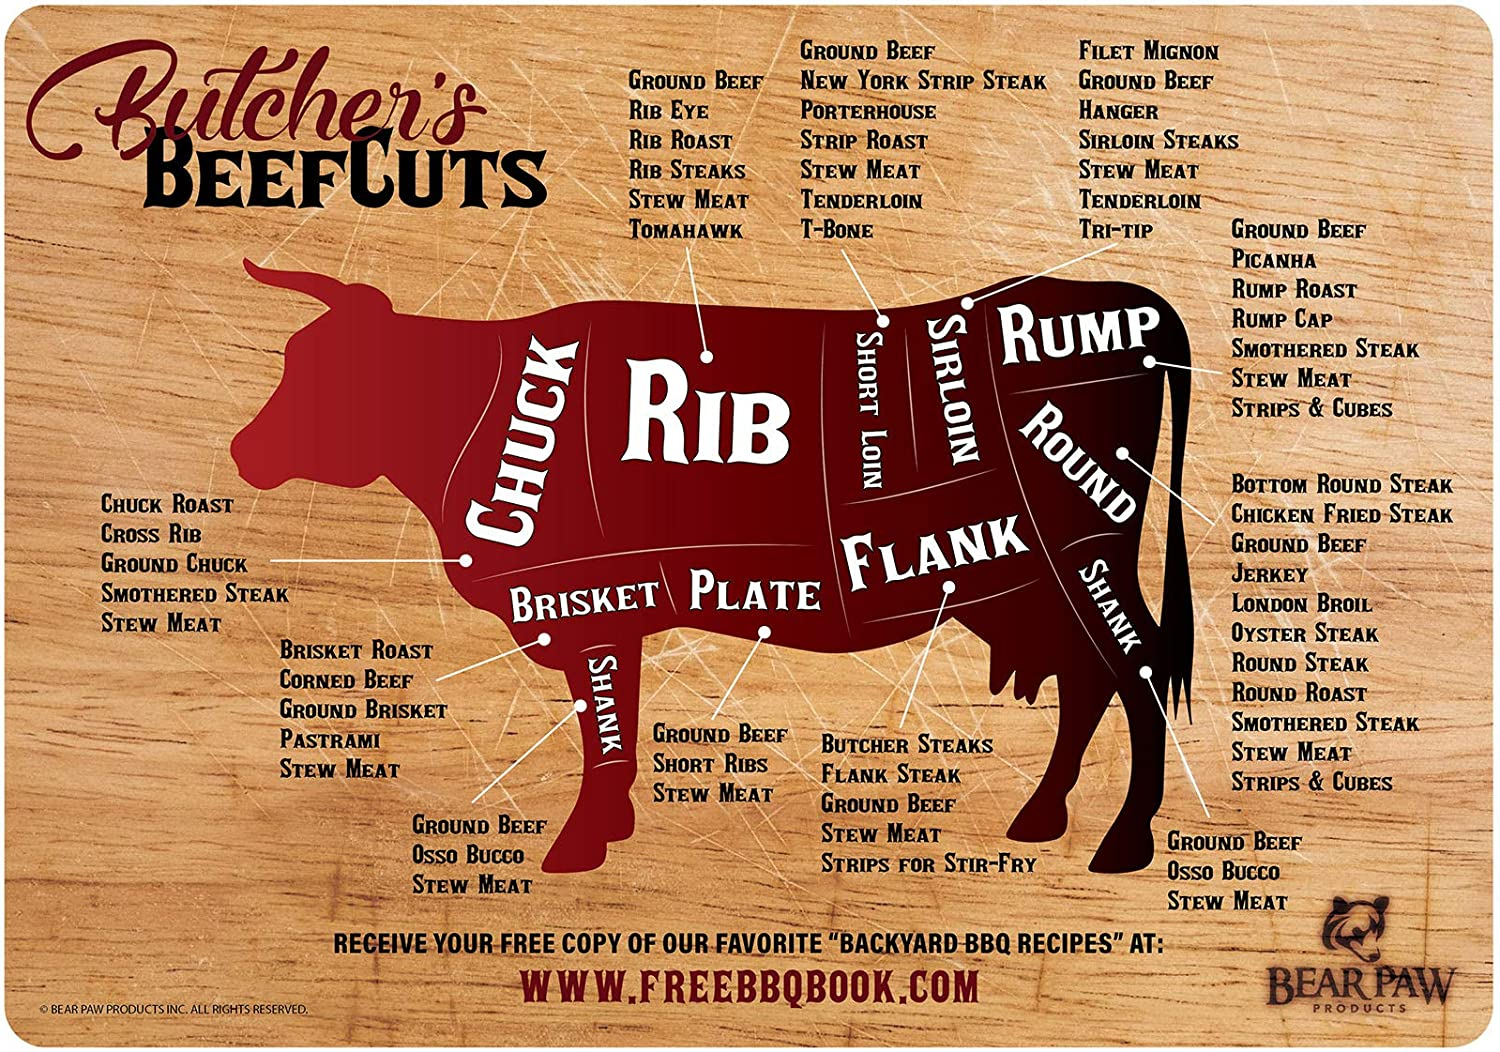 Bear Paws Butcher Shop Meat Cuts Magnet Pack - Butcher Art - Refrigerator Magnets - Art Decor for Kitchen - Foodie, Grill, Gifts - Beef Magnet